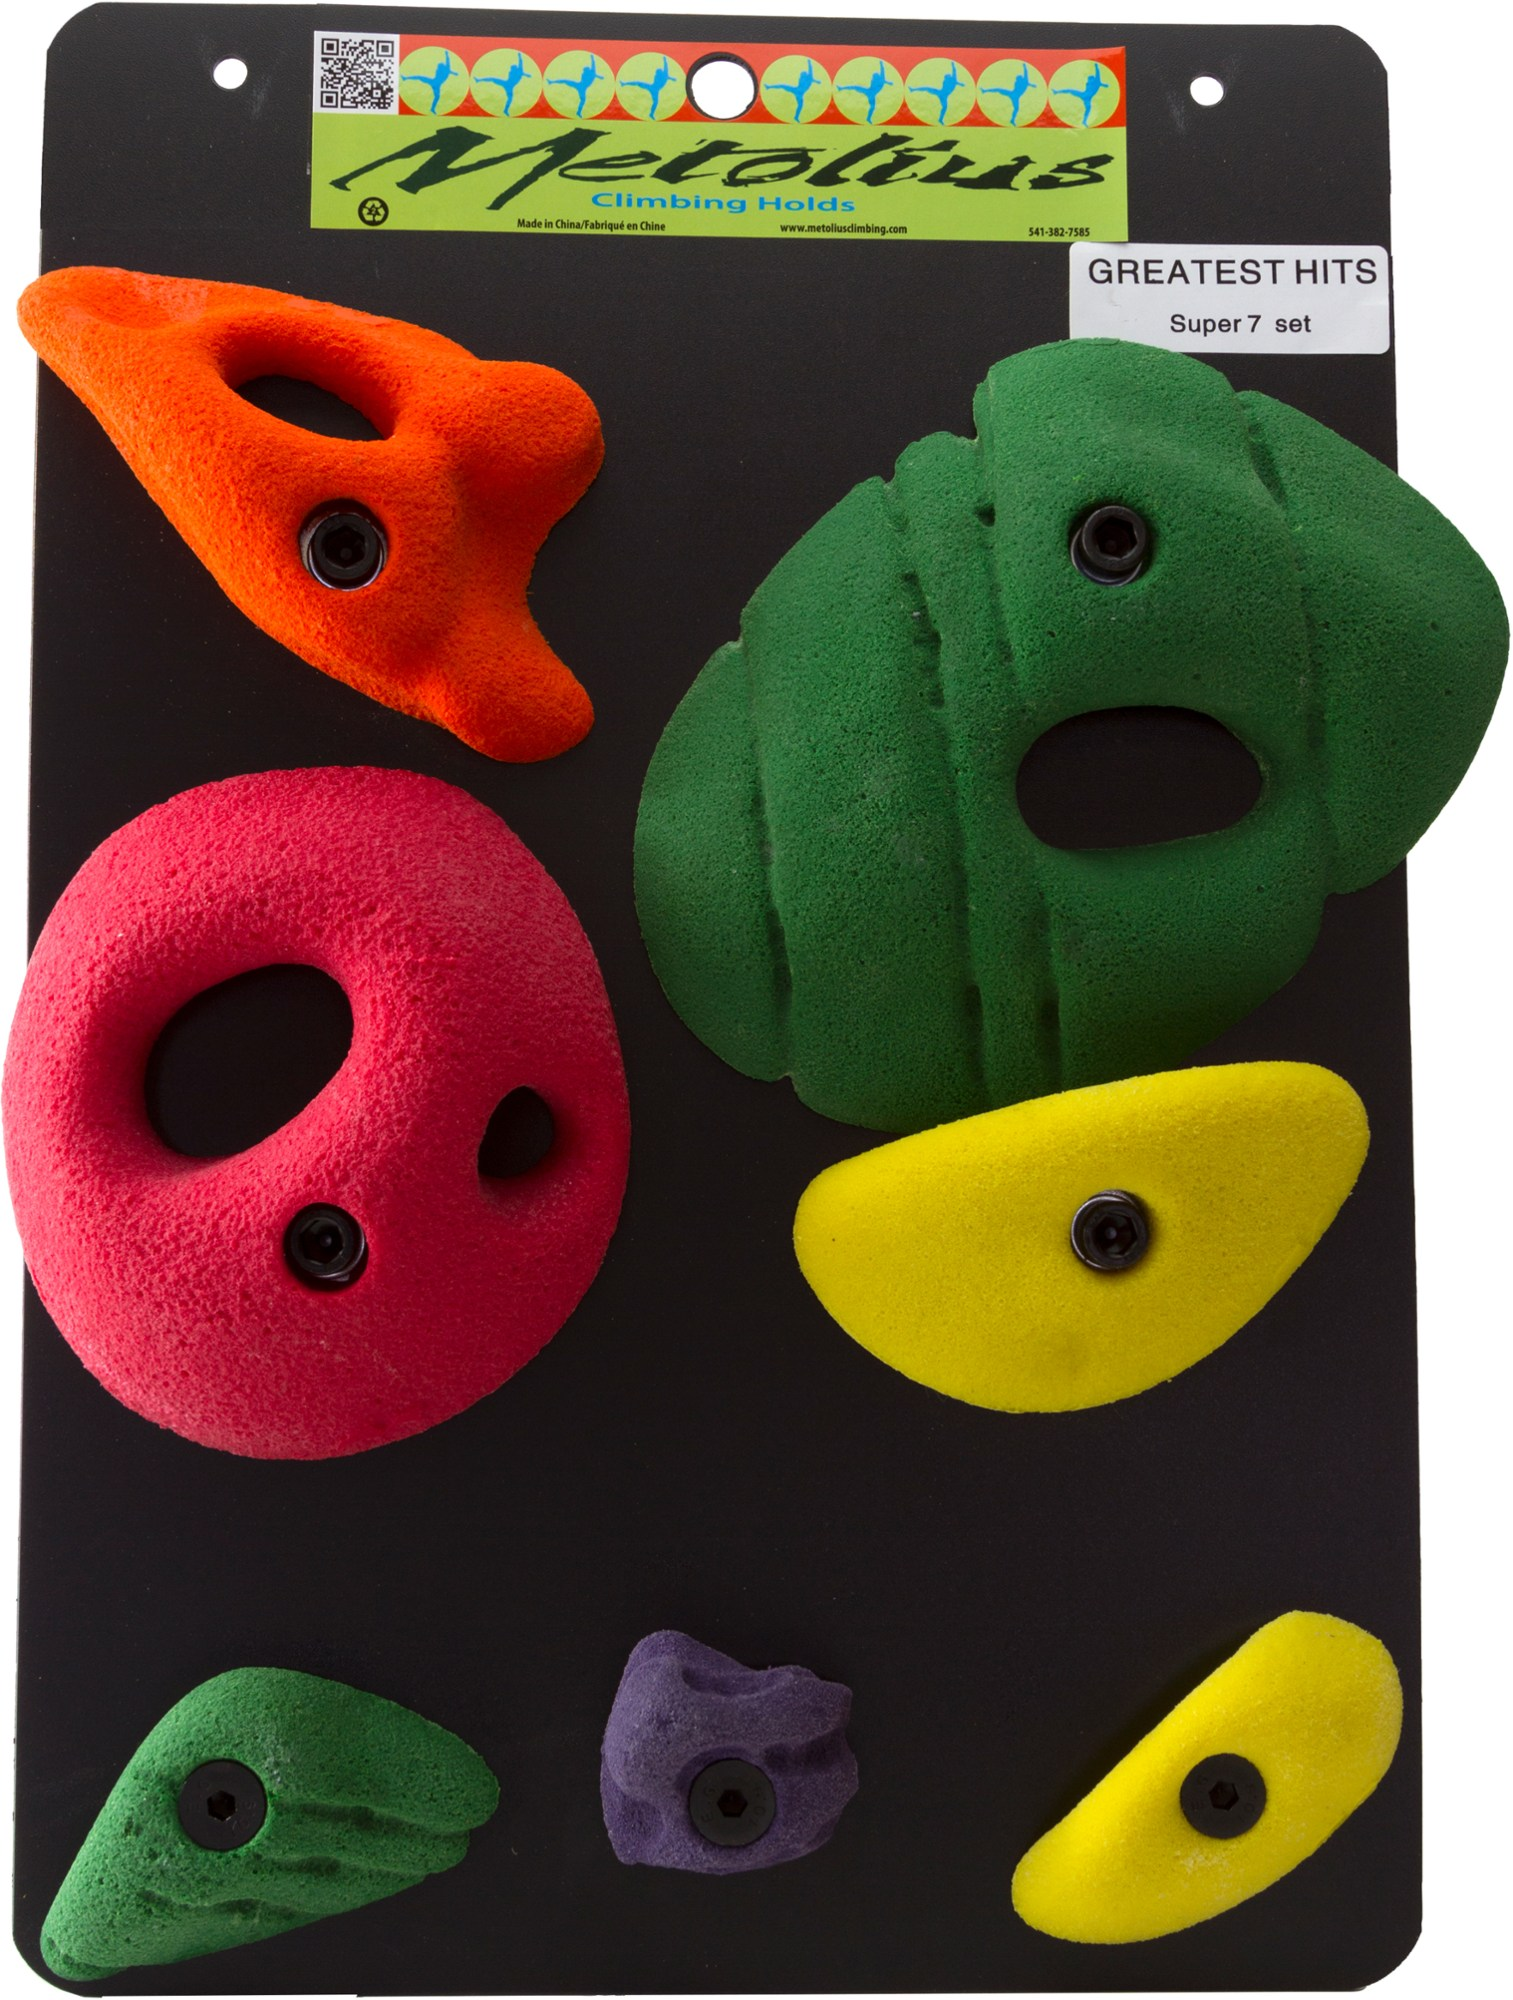 Metolius Greatest Hits Super 7 Climbing Holds